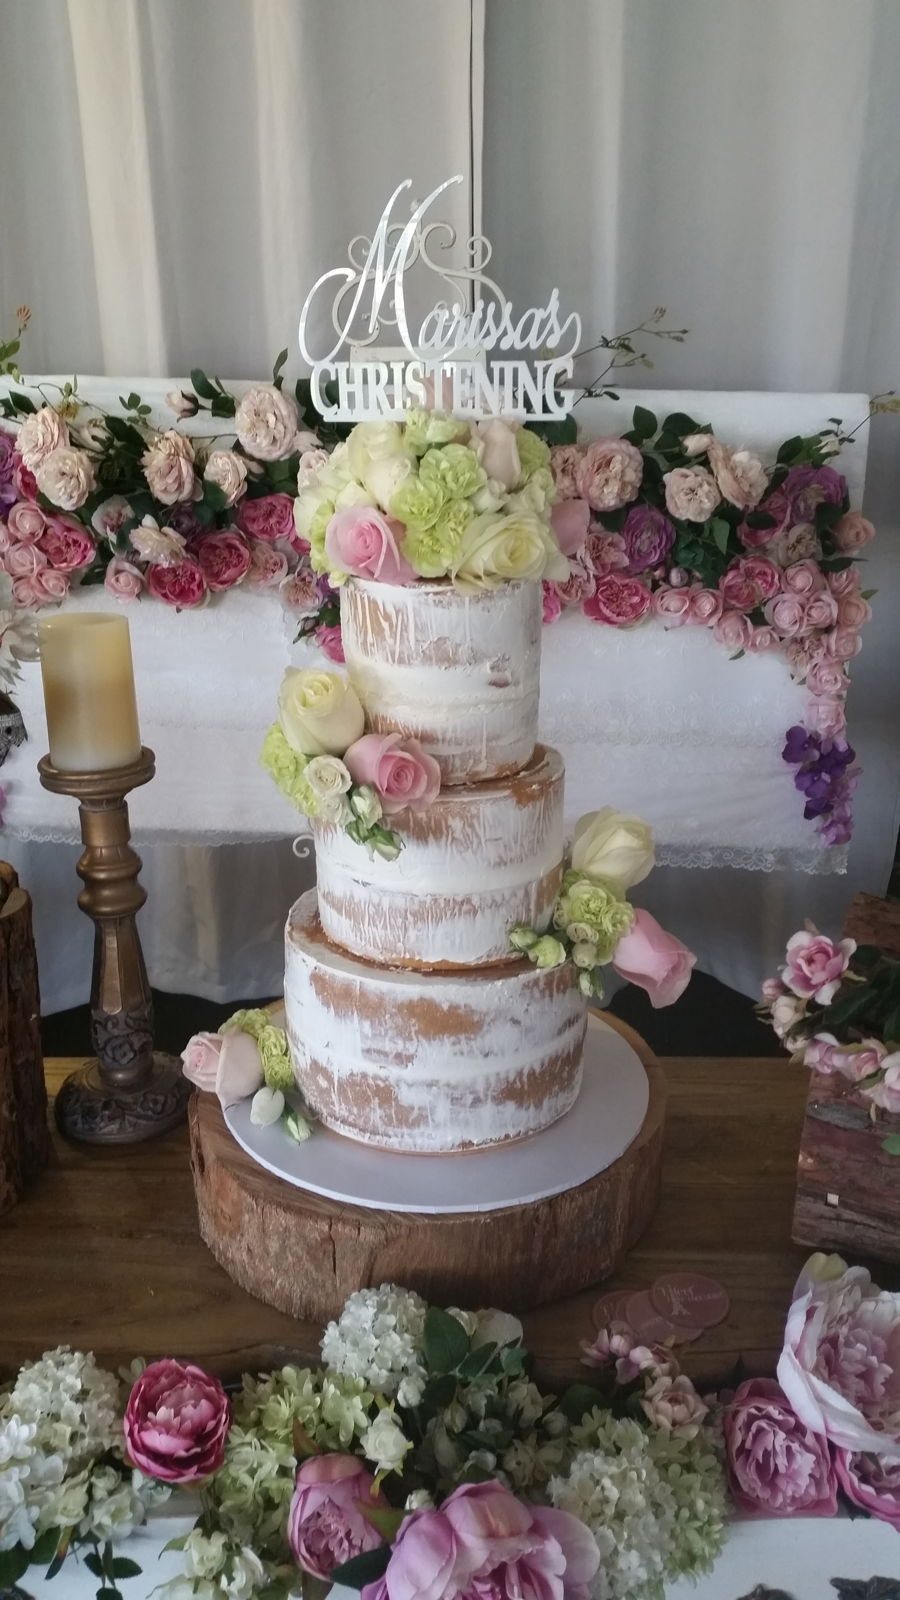 All Types Of Cakes Cakecentral Com